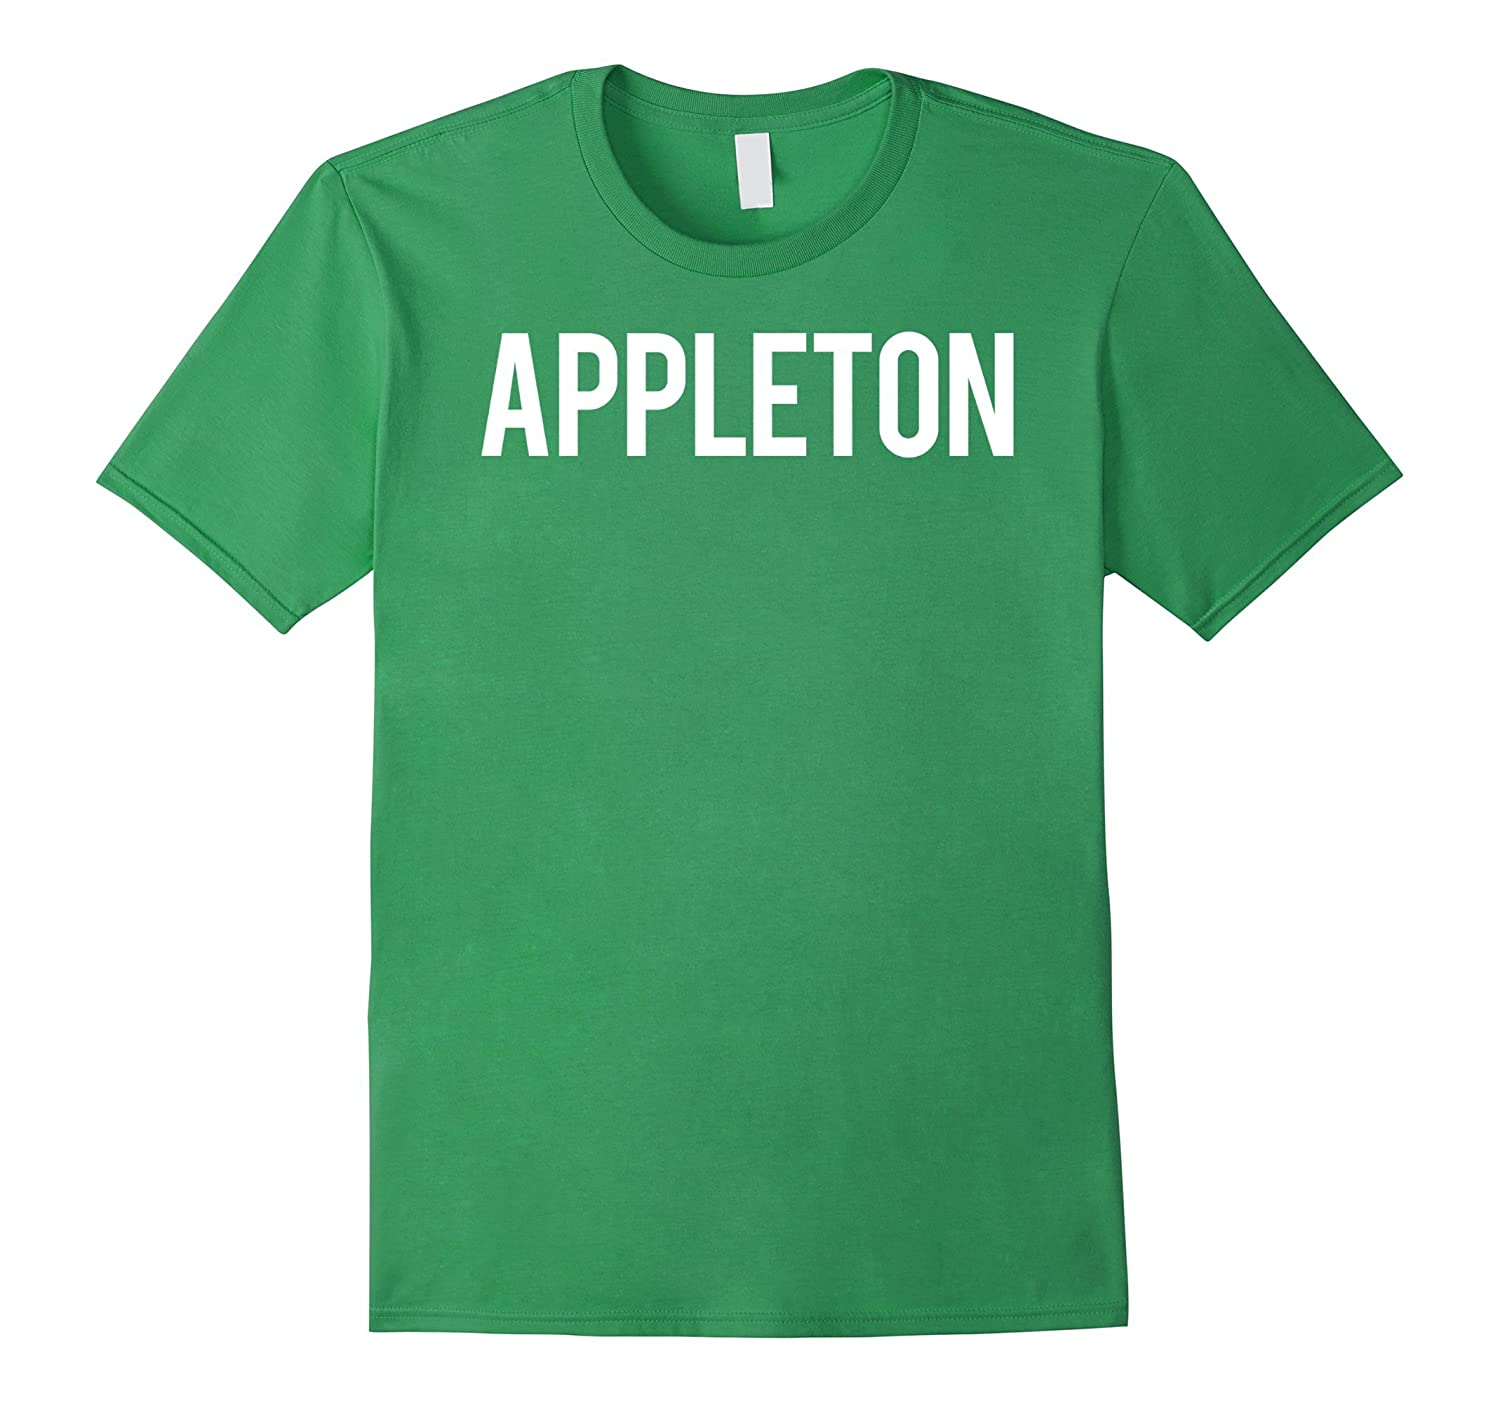 Appleton T Shirt Cool Wisconsin WI funny cheap gift tee